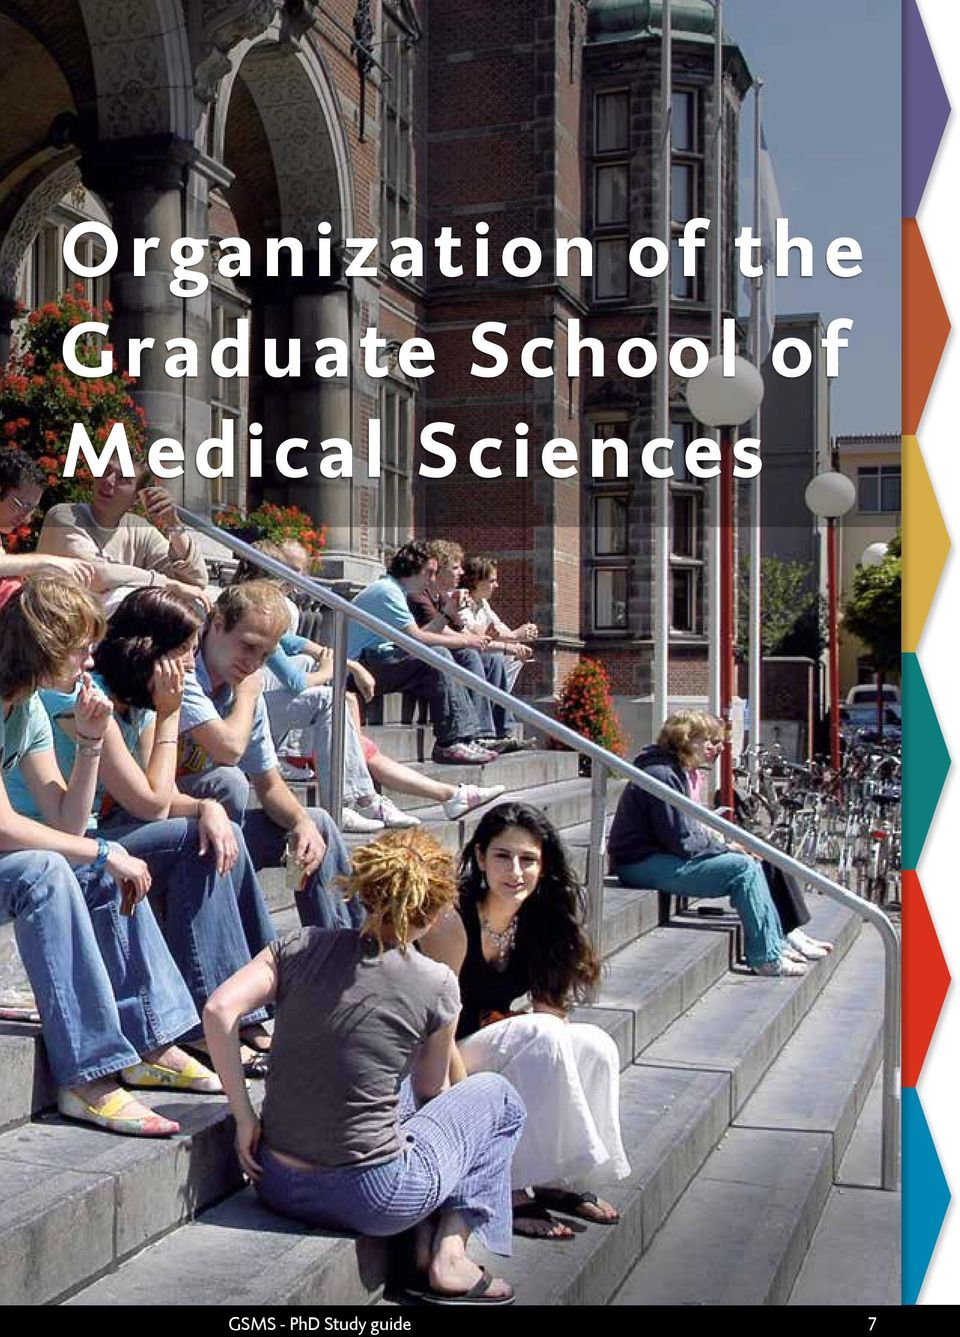 Medical Sciences